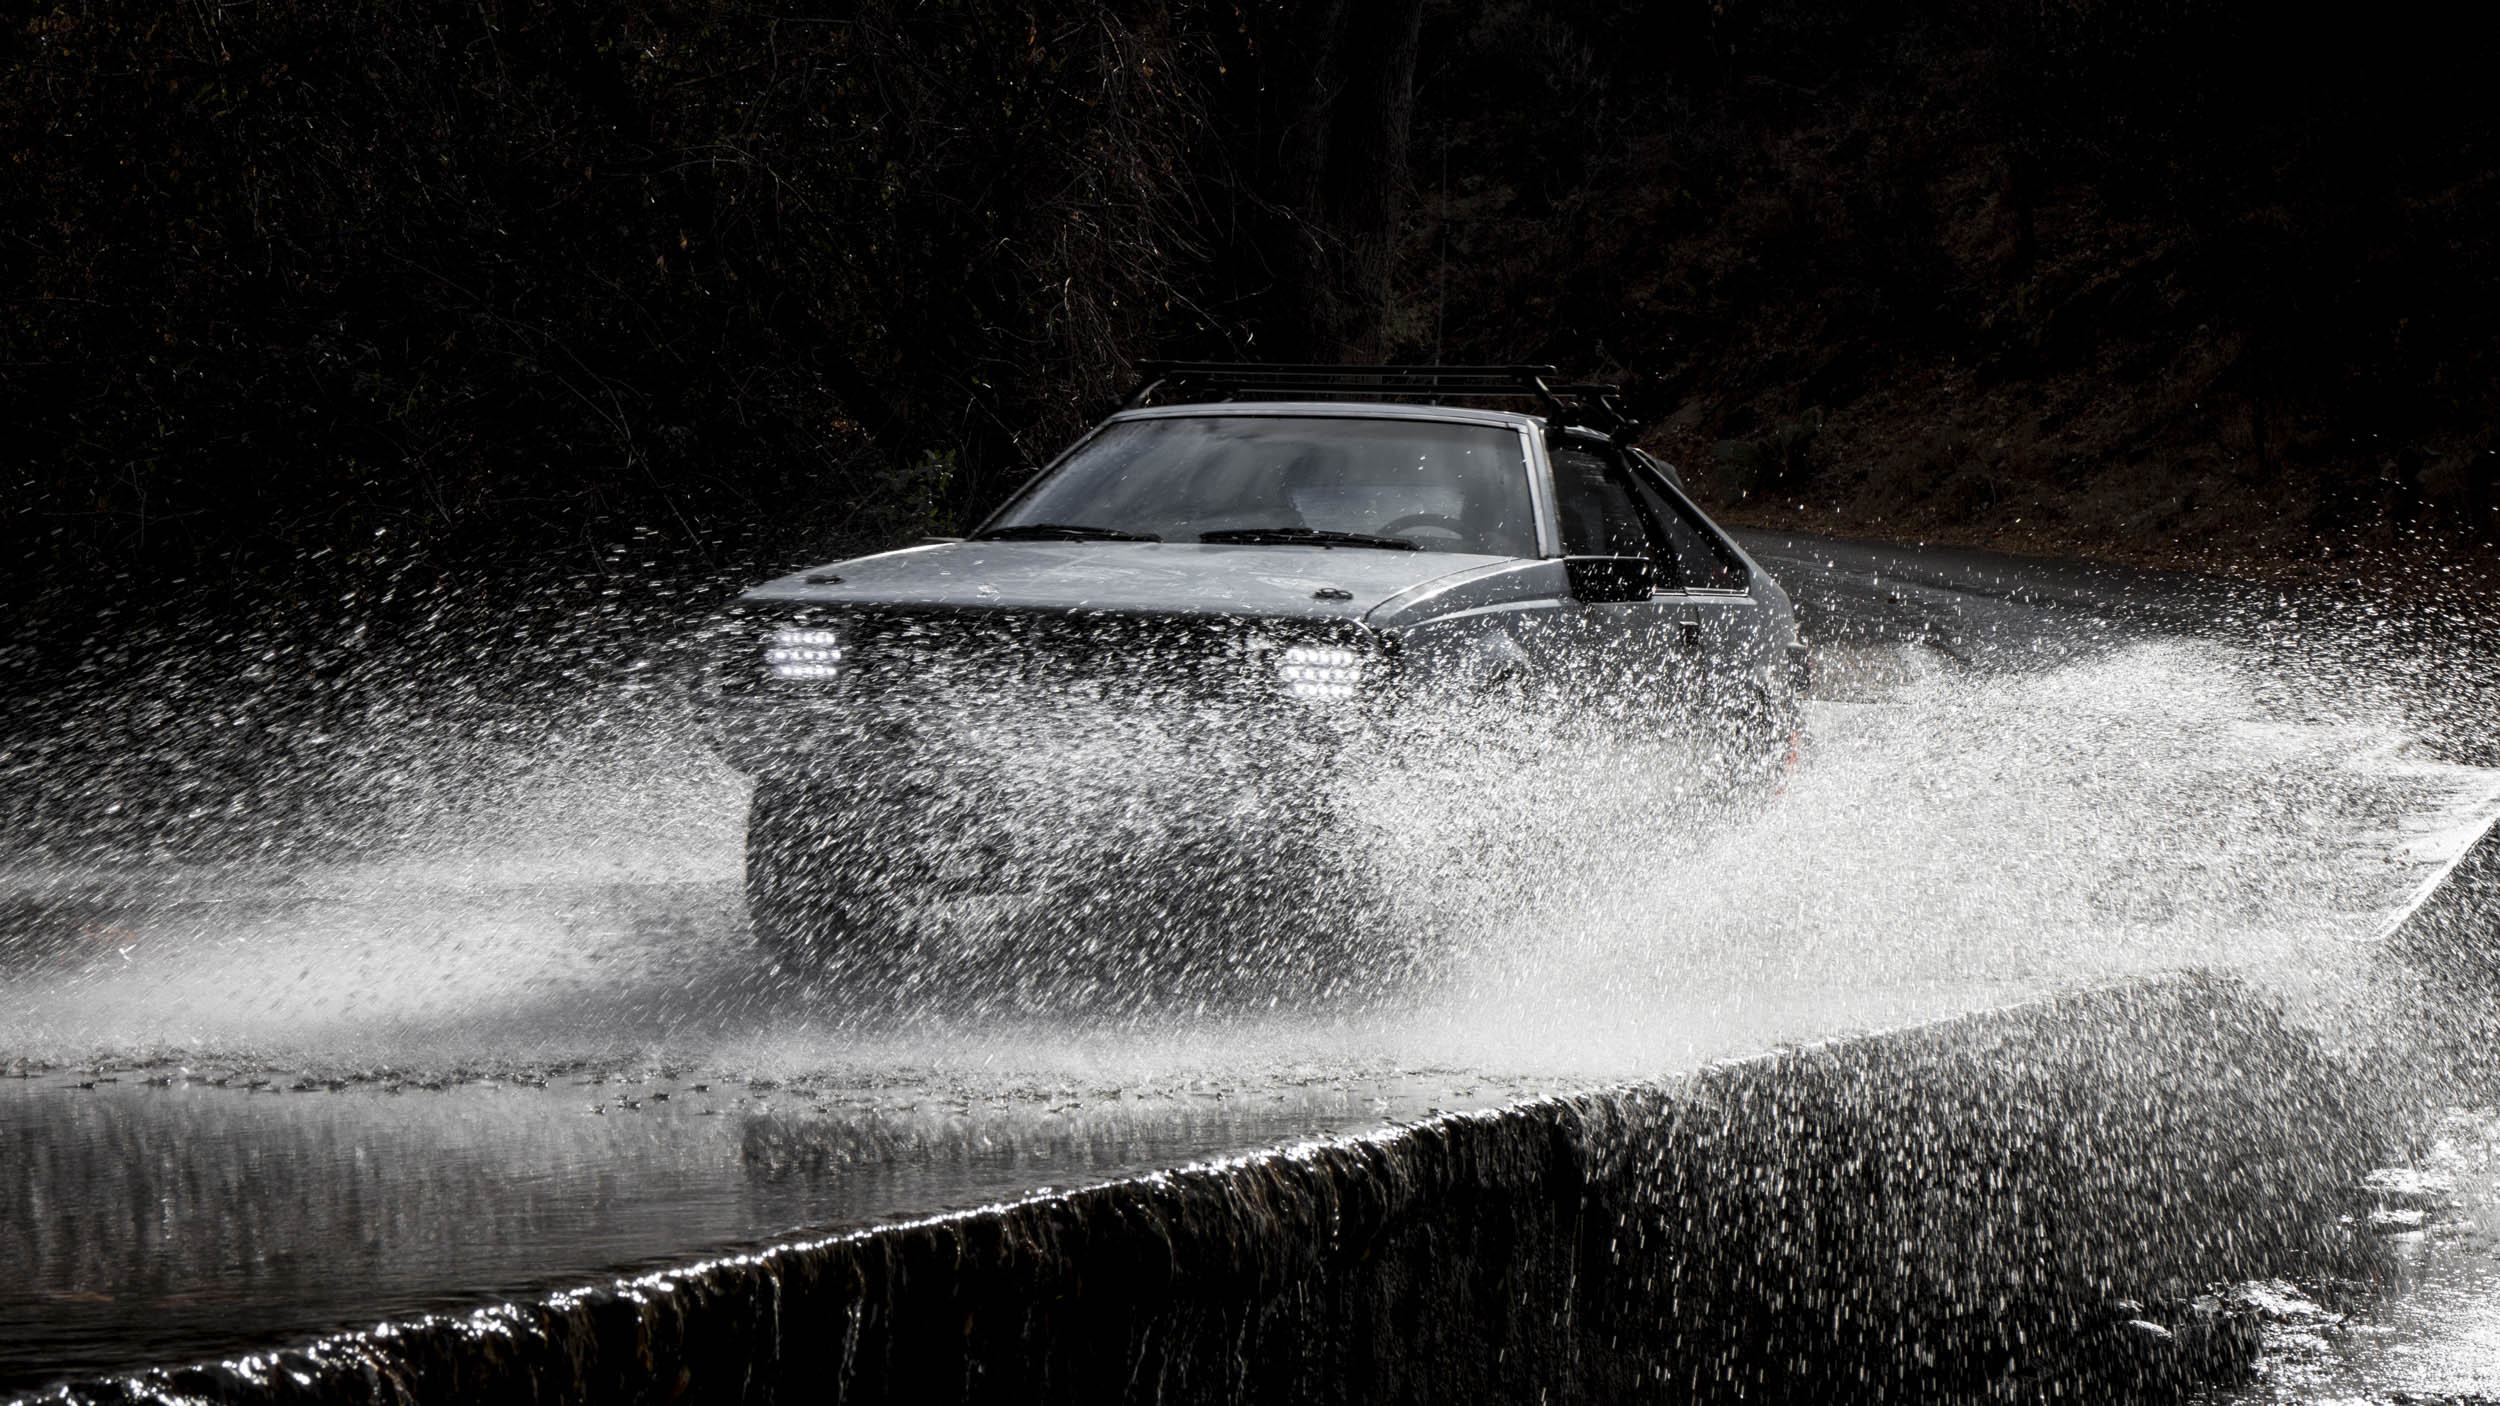 1984 Toyota Celica GT driving through a puddle